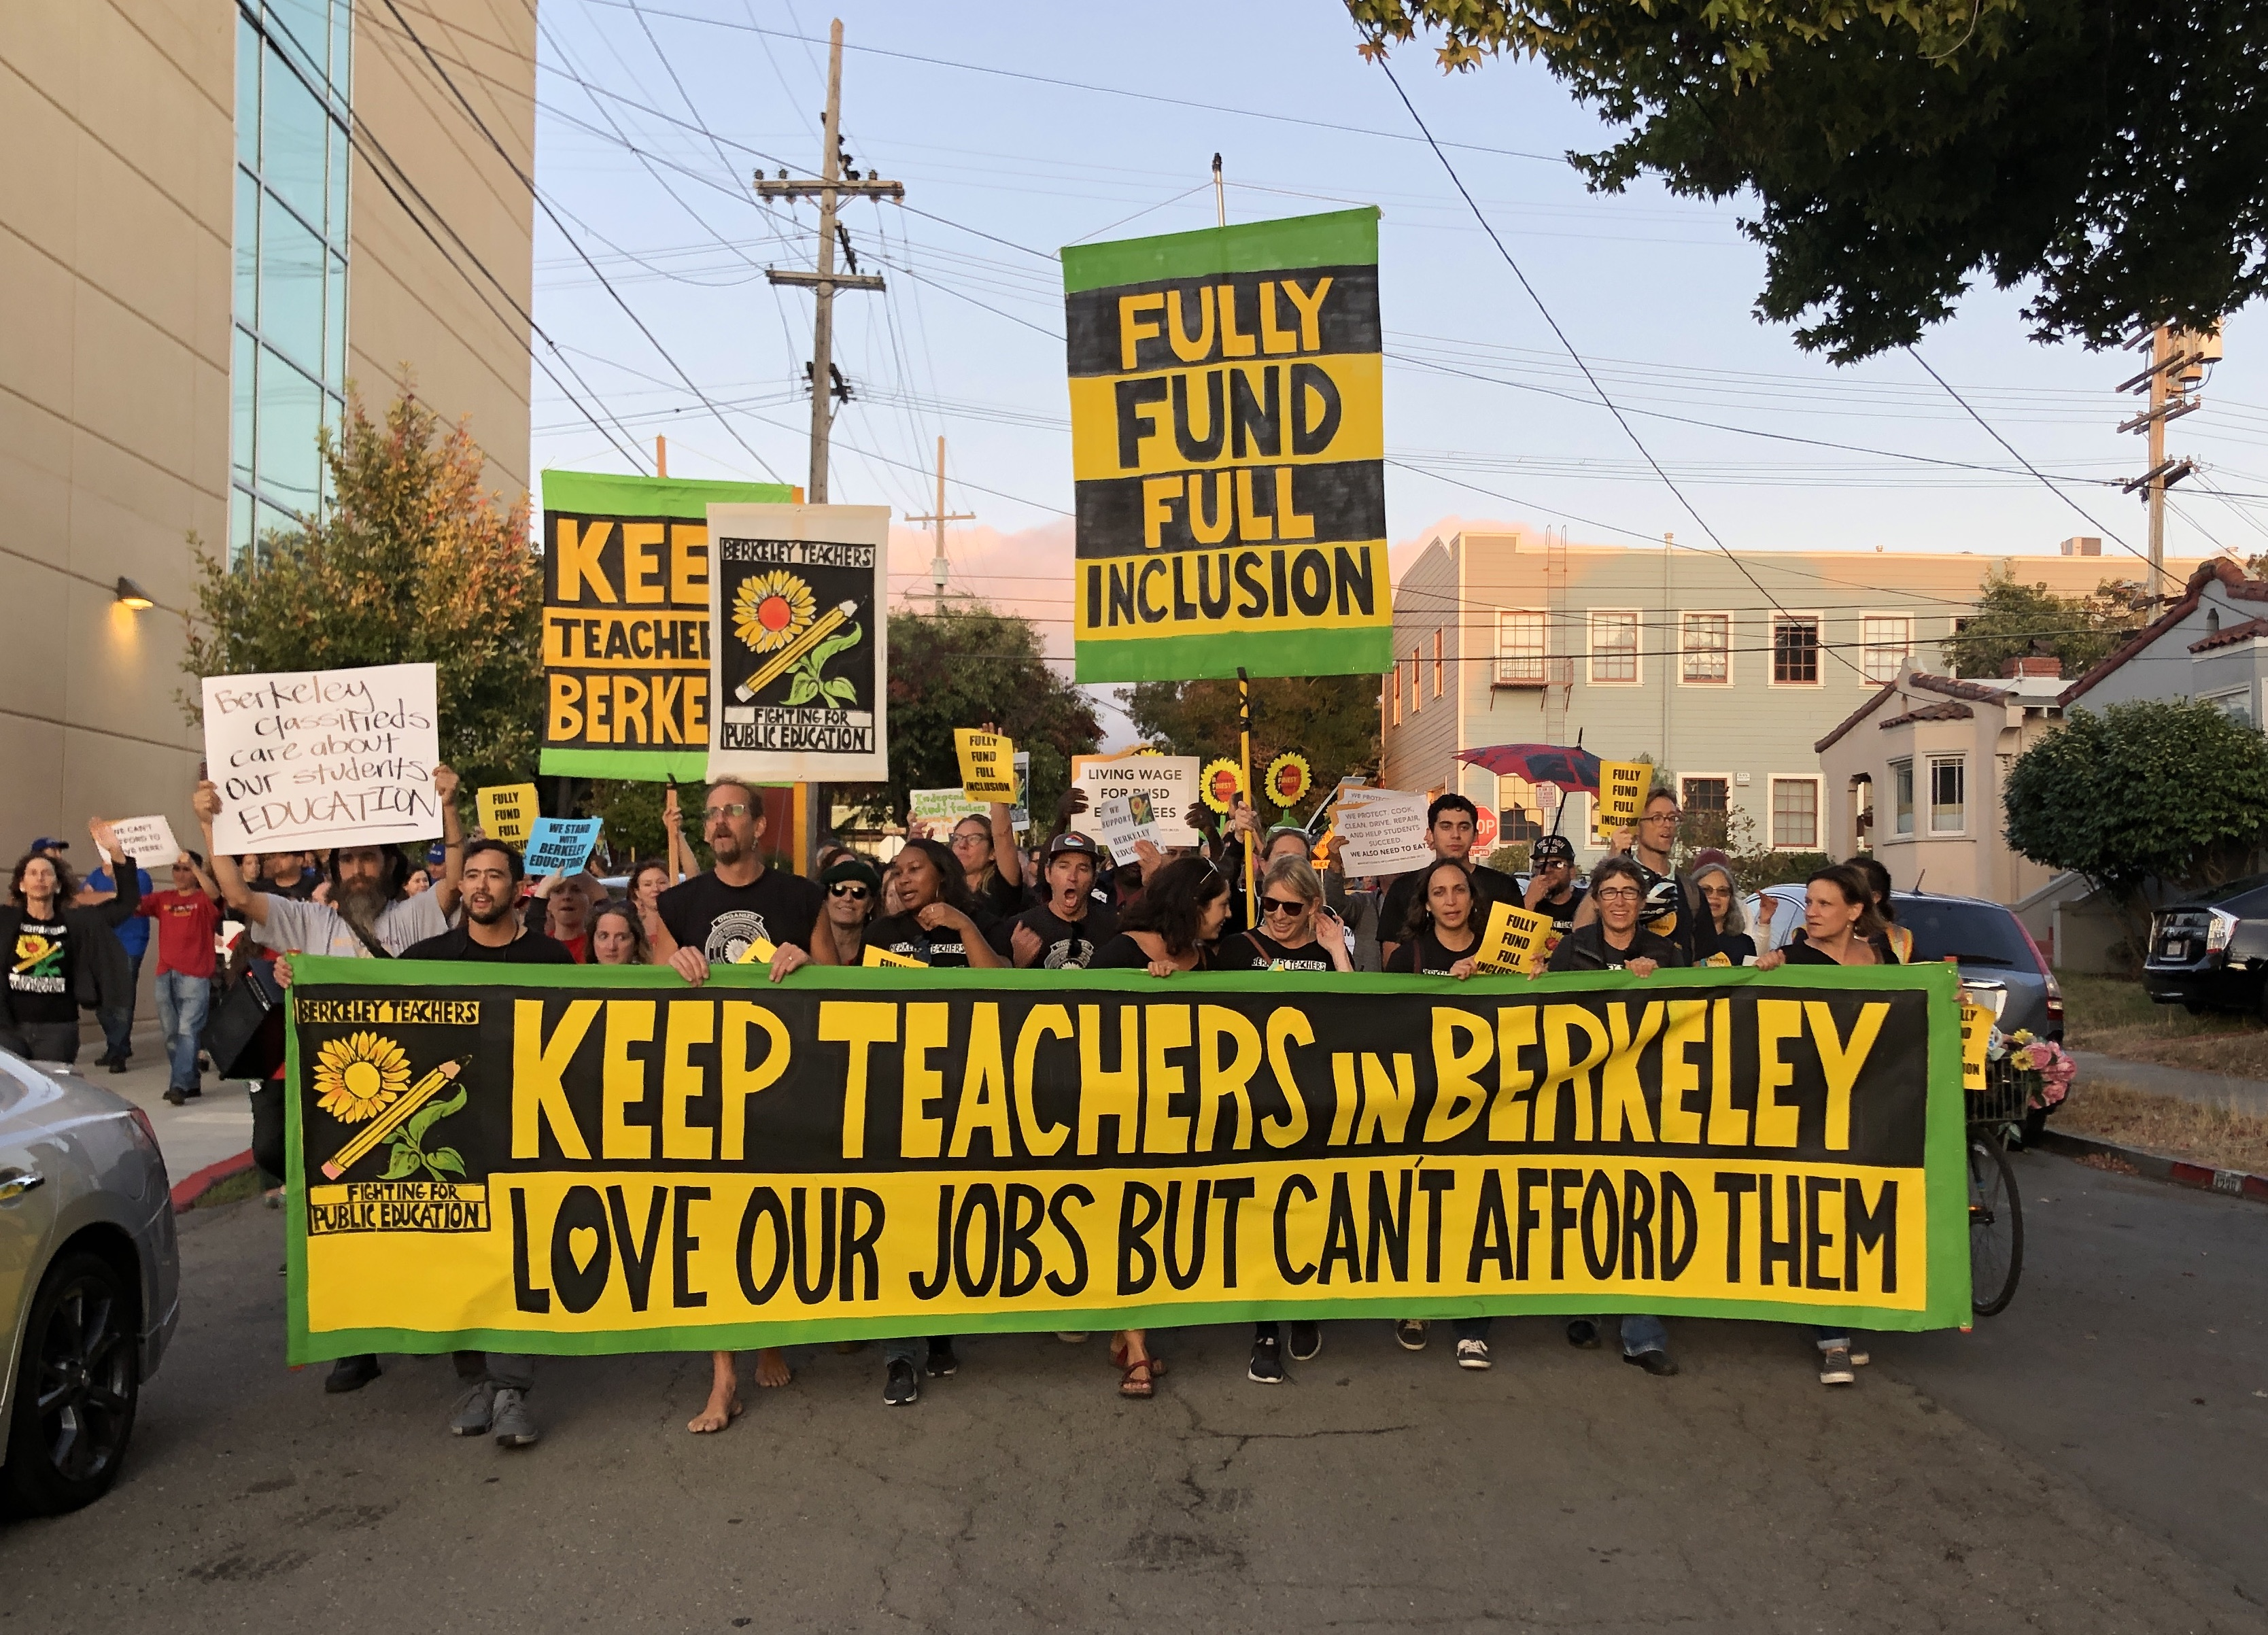 Mass of protesters in the street, carrying banners supporting Berkeley teachers